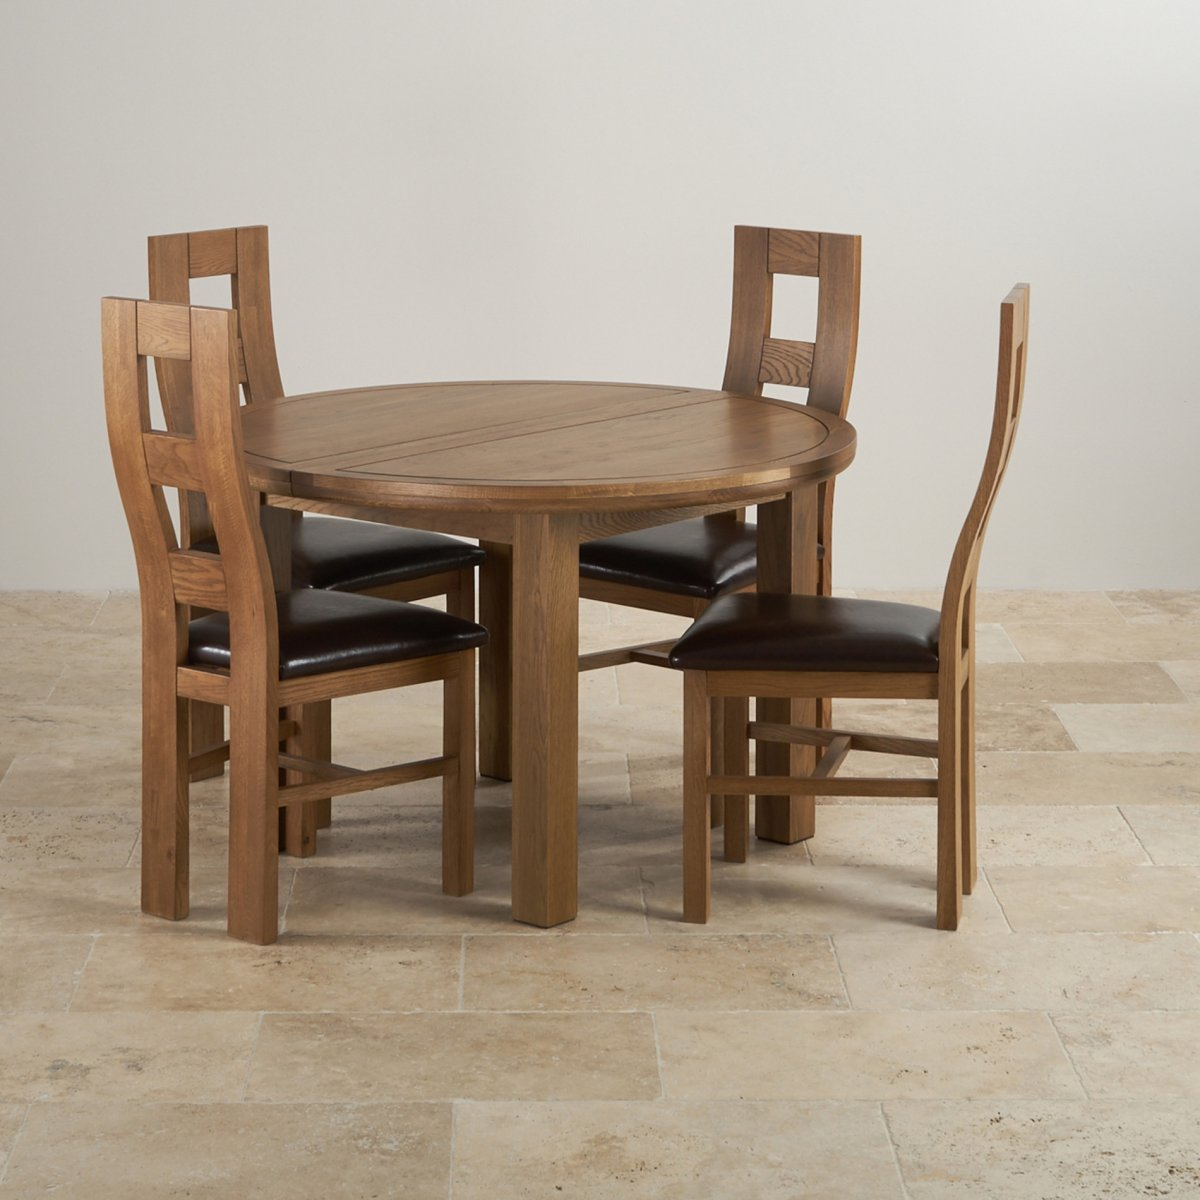 knightsbridge 4ft rustic solid oak round extending dining table 4 wave back brown leather chairs - Oak Round Dining Table